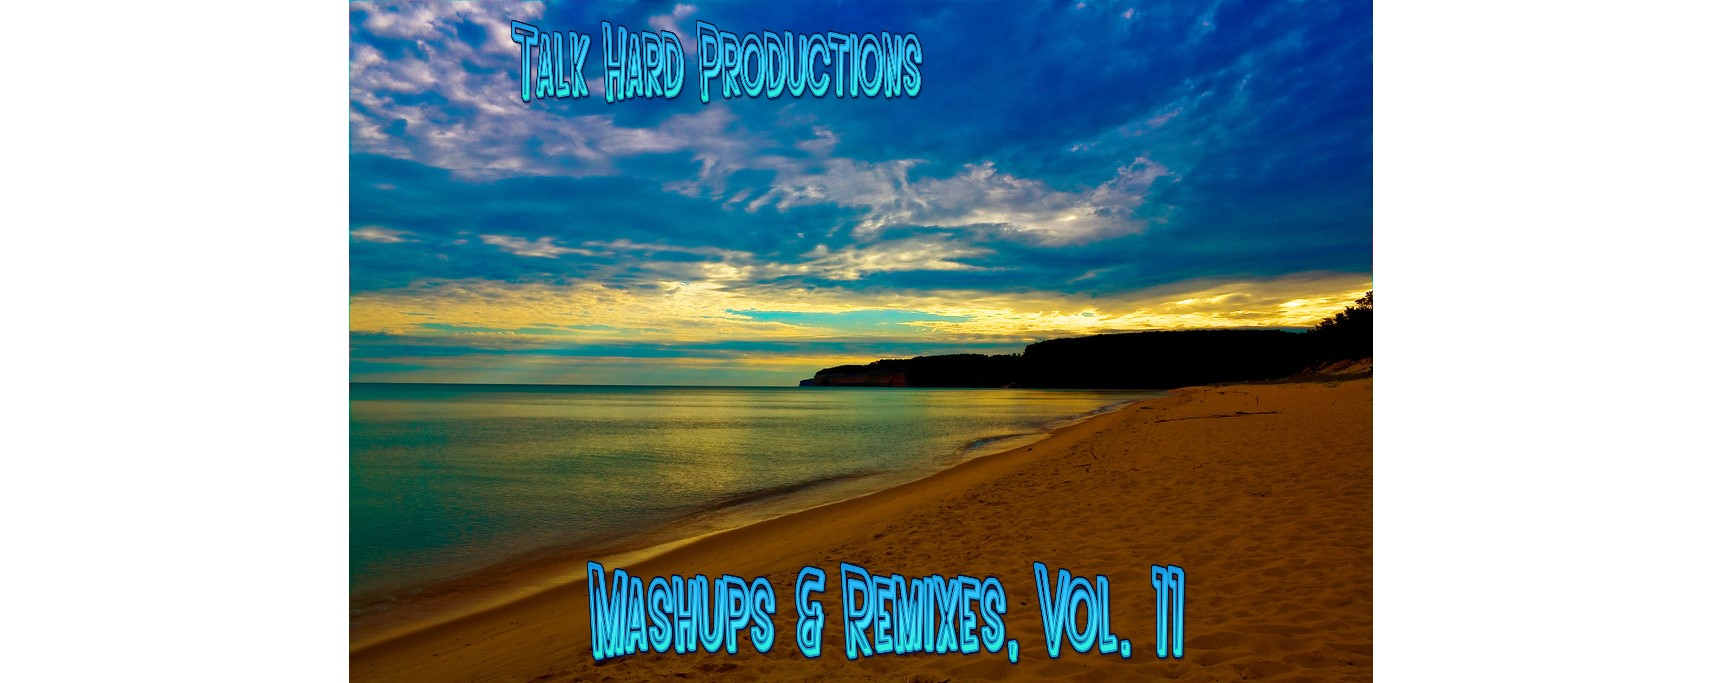 A Gangsta's Blinding Lights of Paradise - Coolio vs. The Weeknd (THP Mashup)